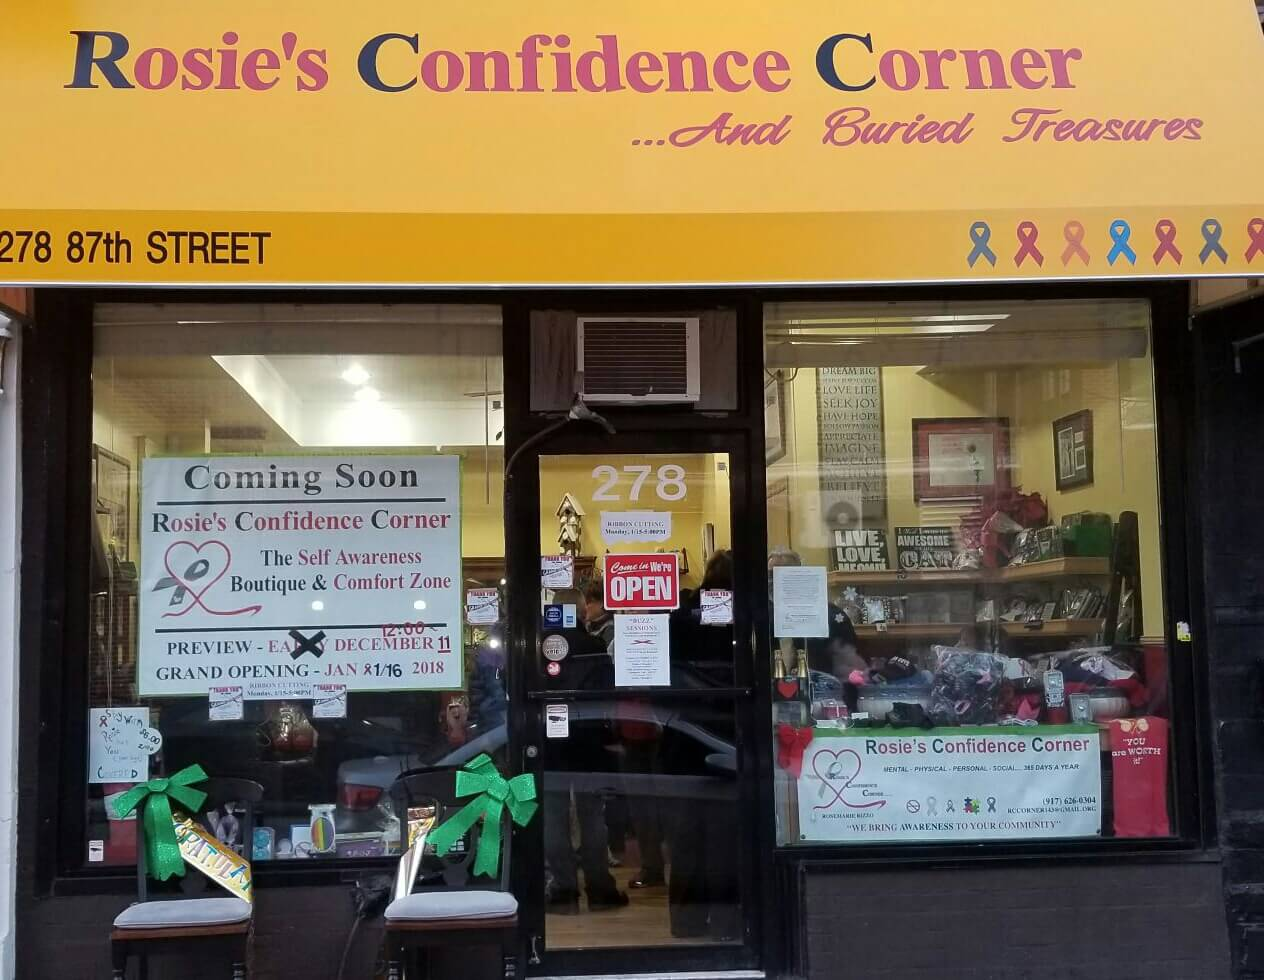 Cuisine Et Confidences Rosie S Confidence Corner Celebrates Grand Opening Of Ridge Home